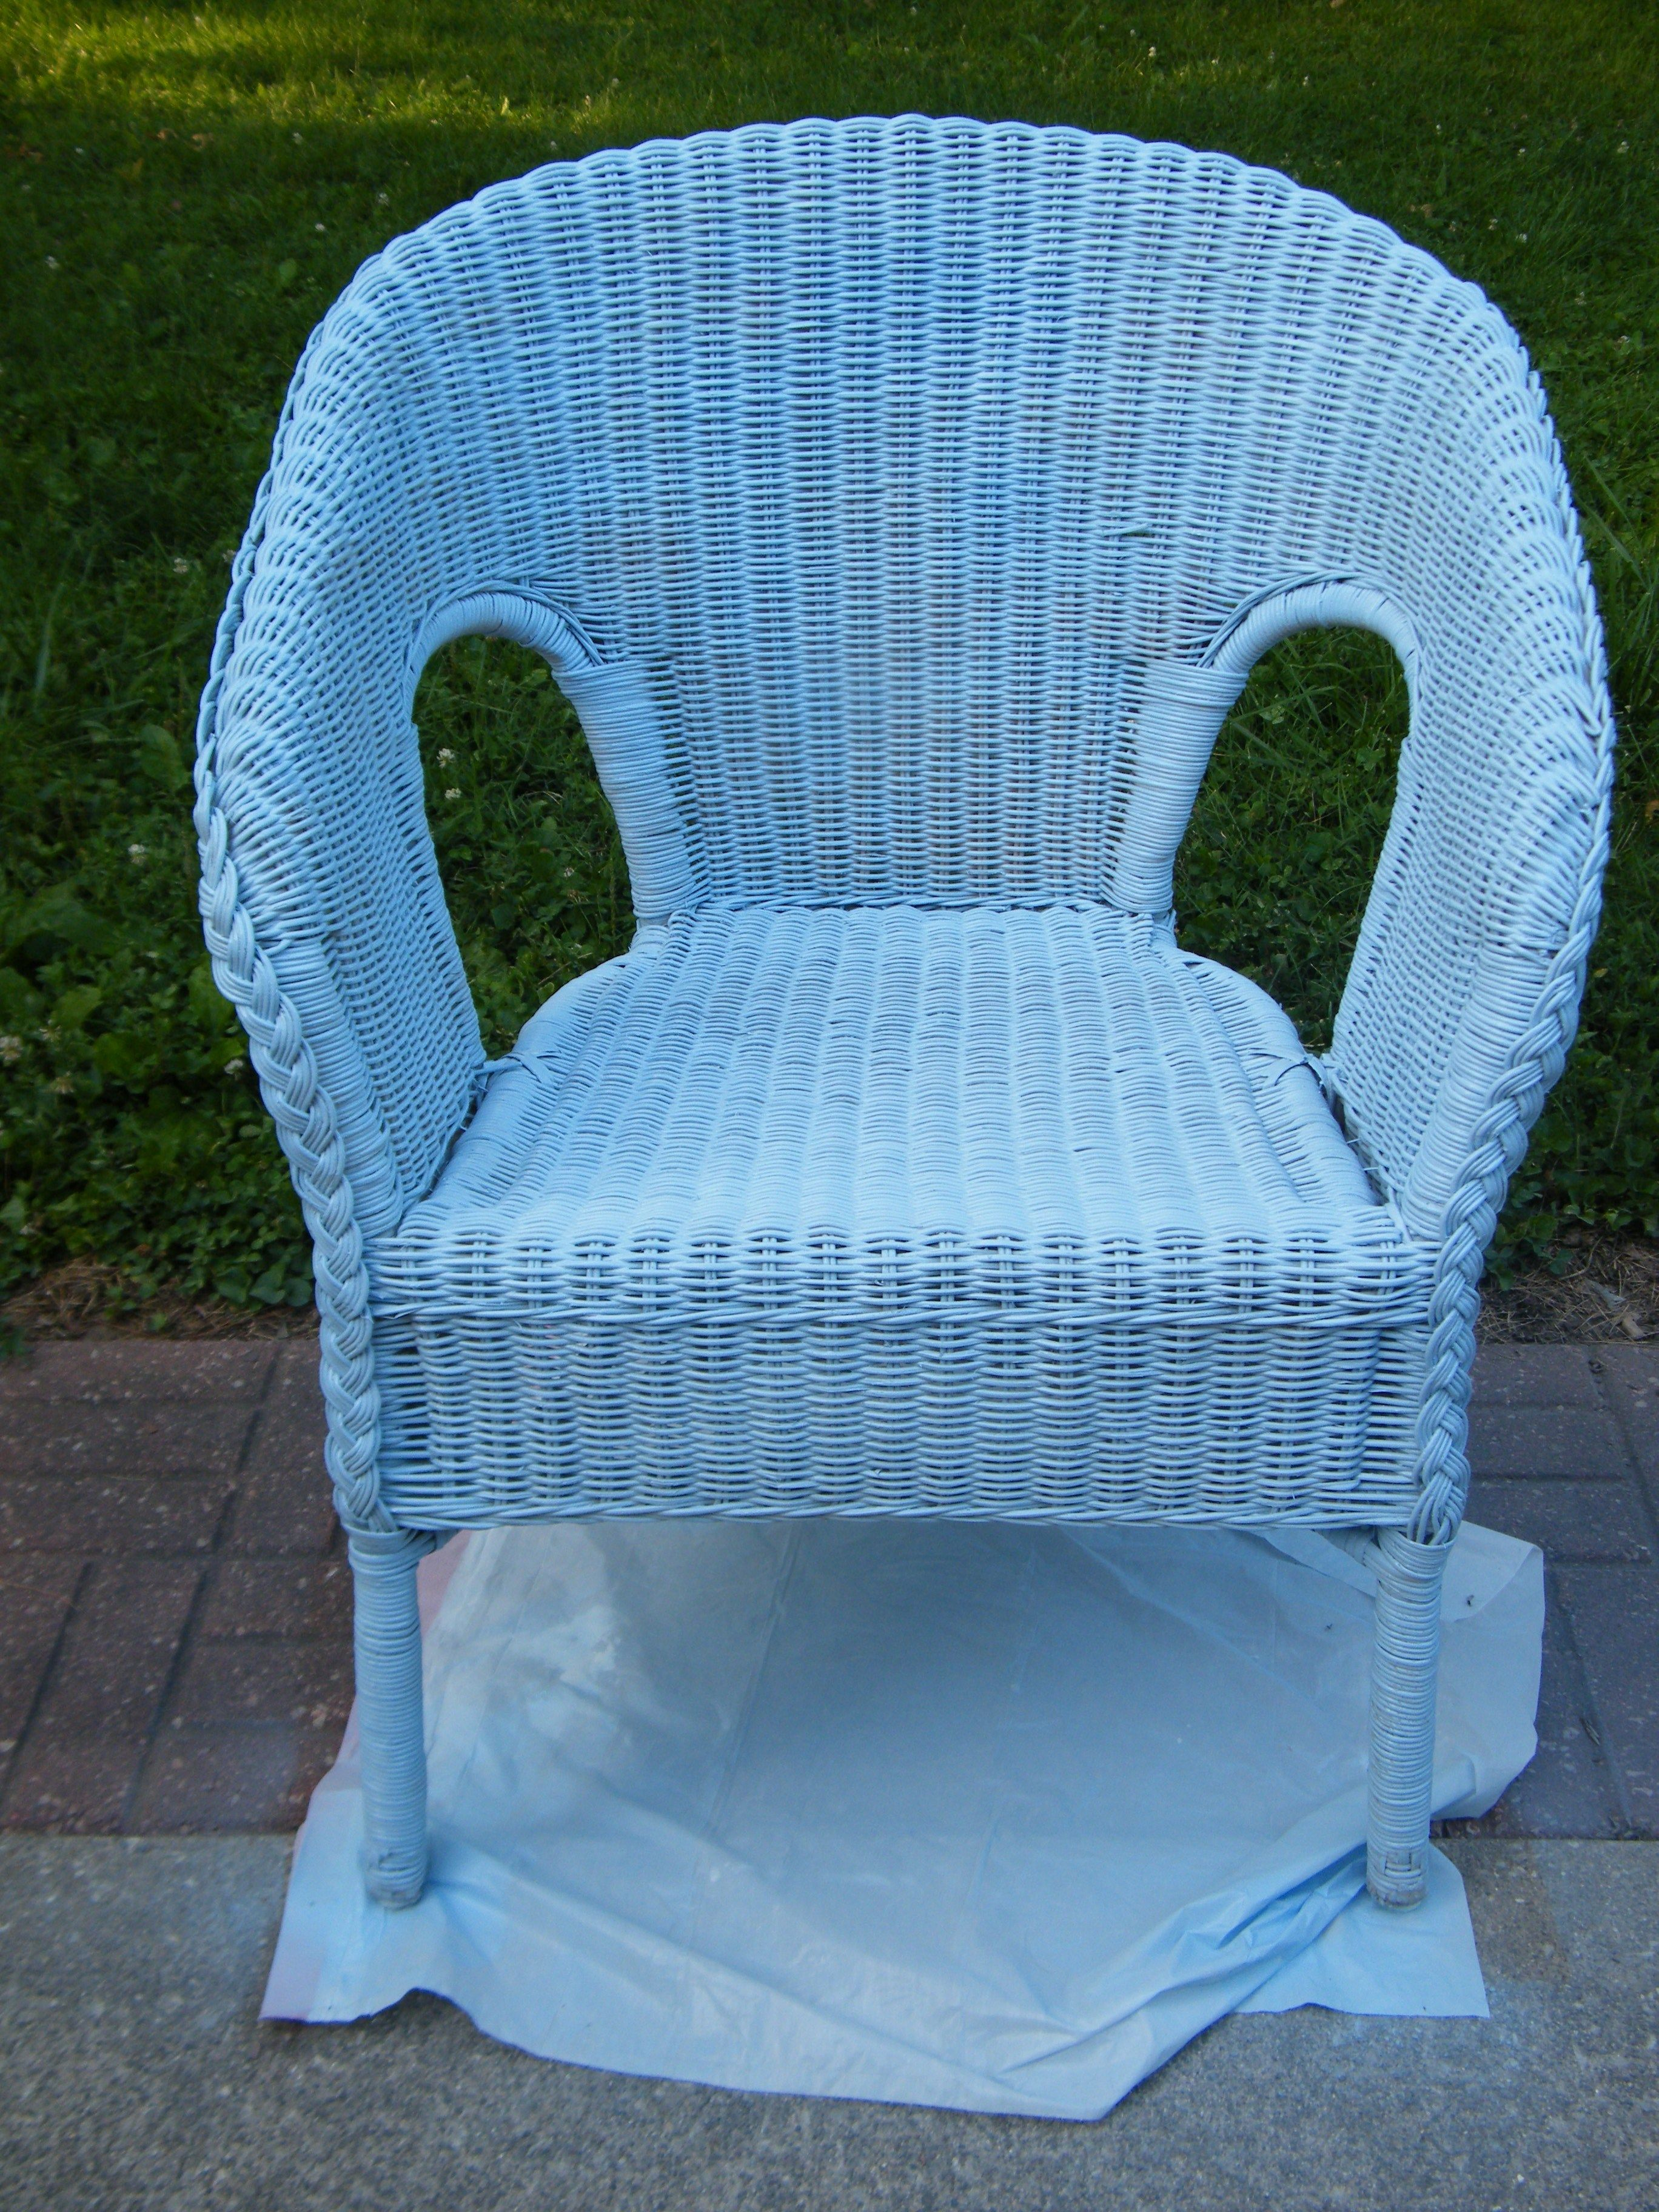 Spray Painted $5 Wicker Chair   My Own Home